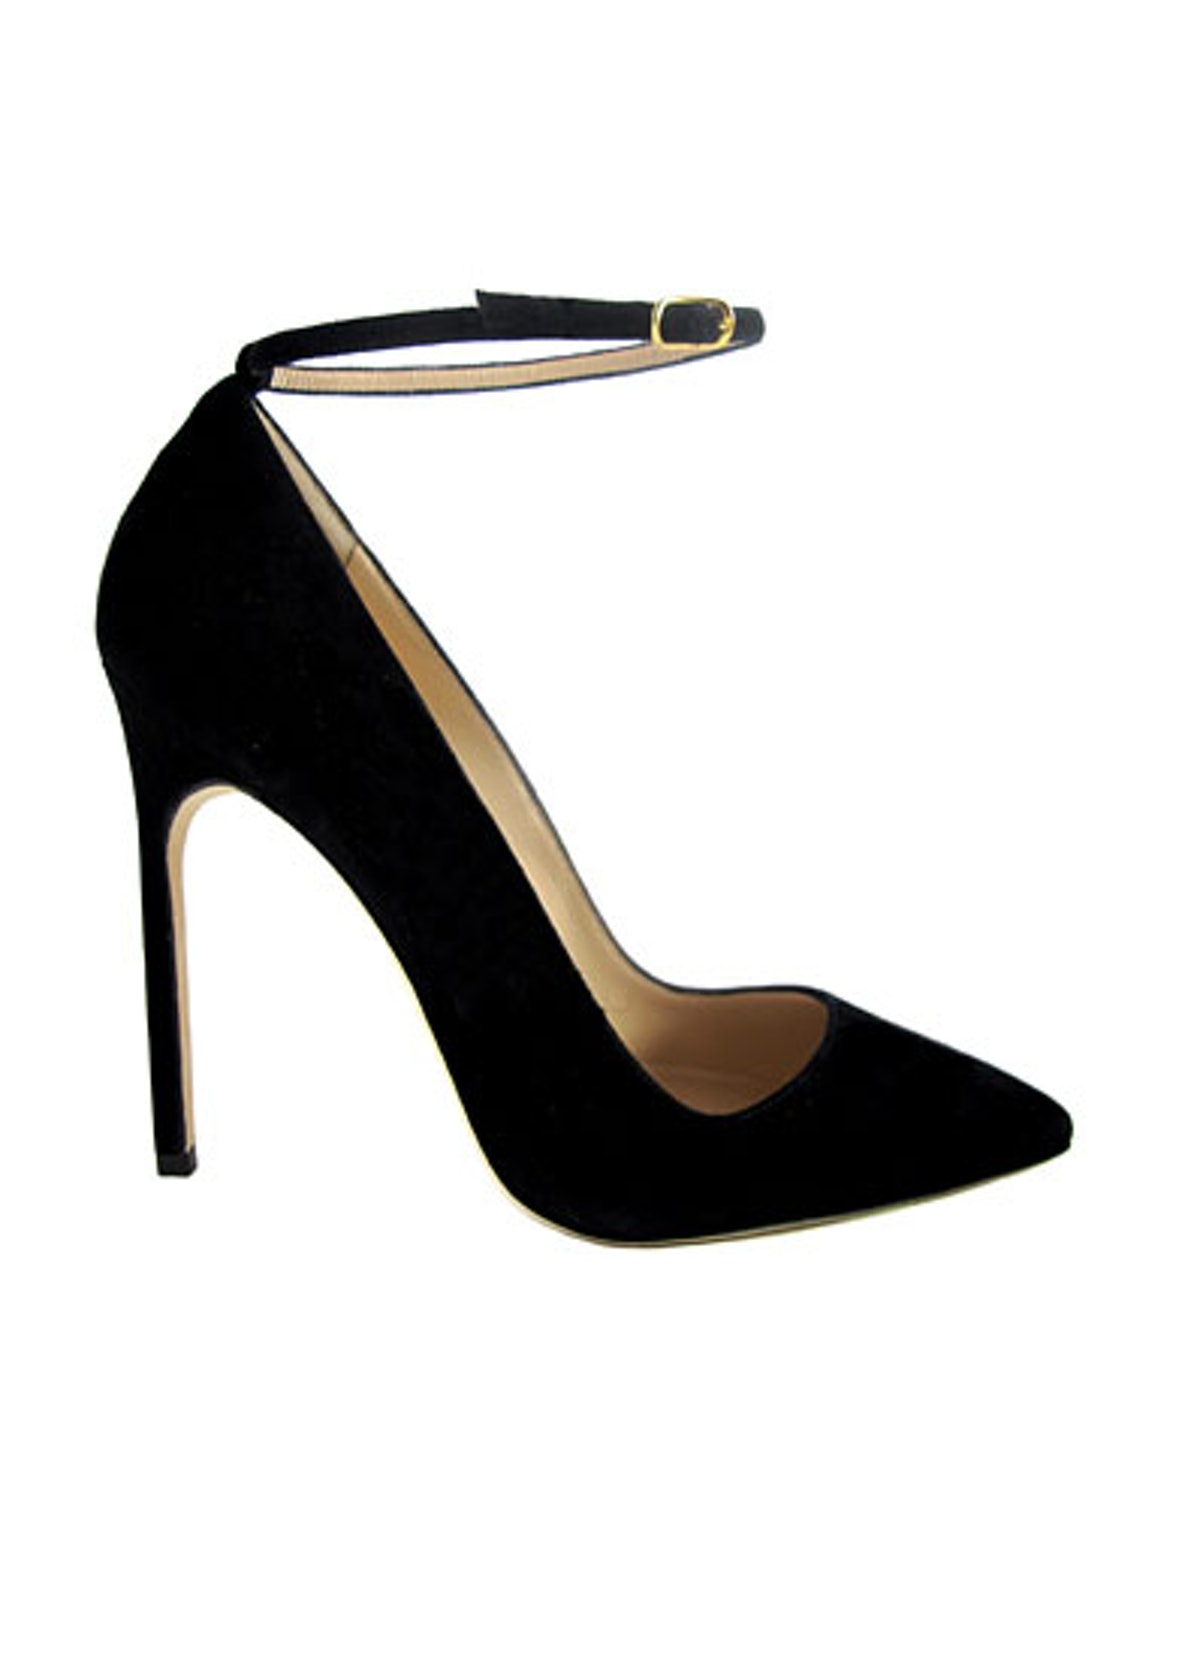 fass-wicked-shoes-04-v.jpg